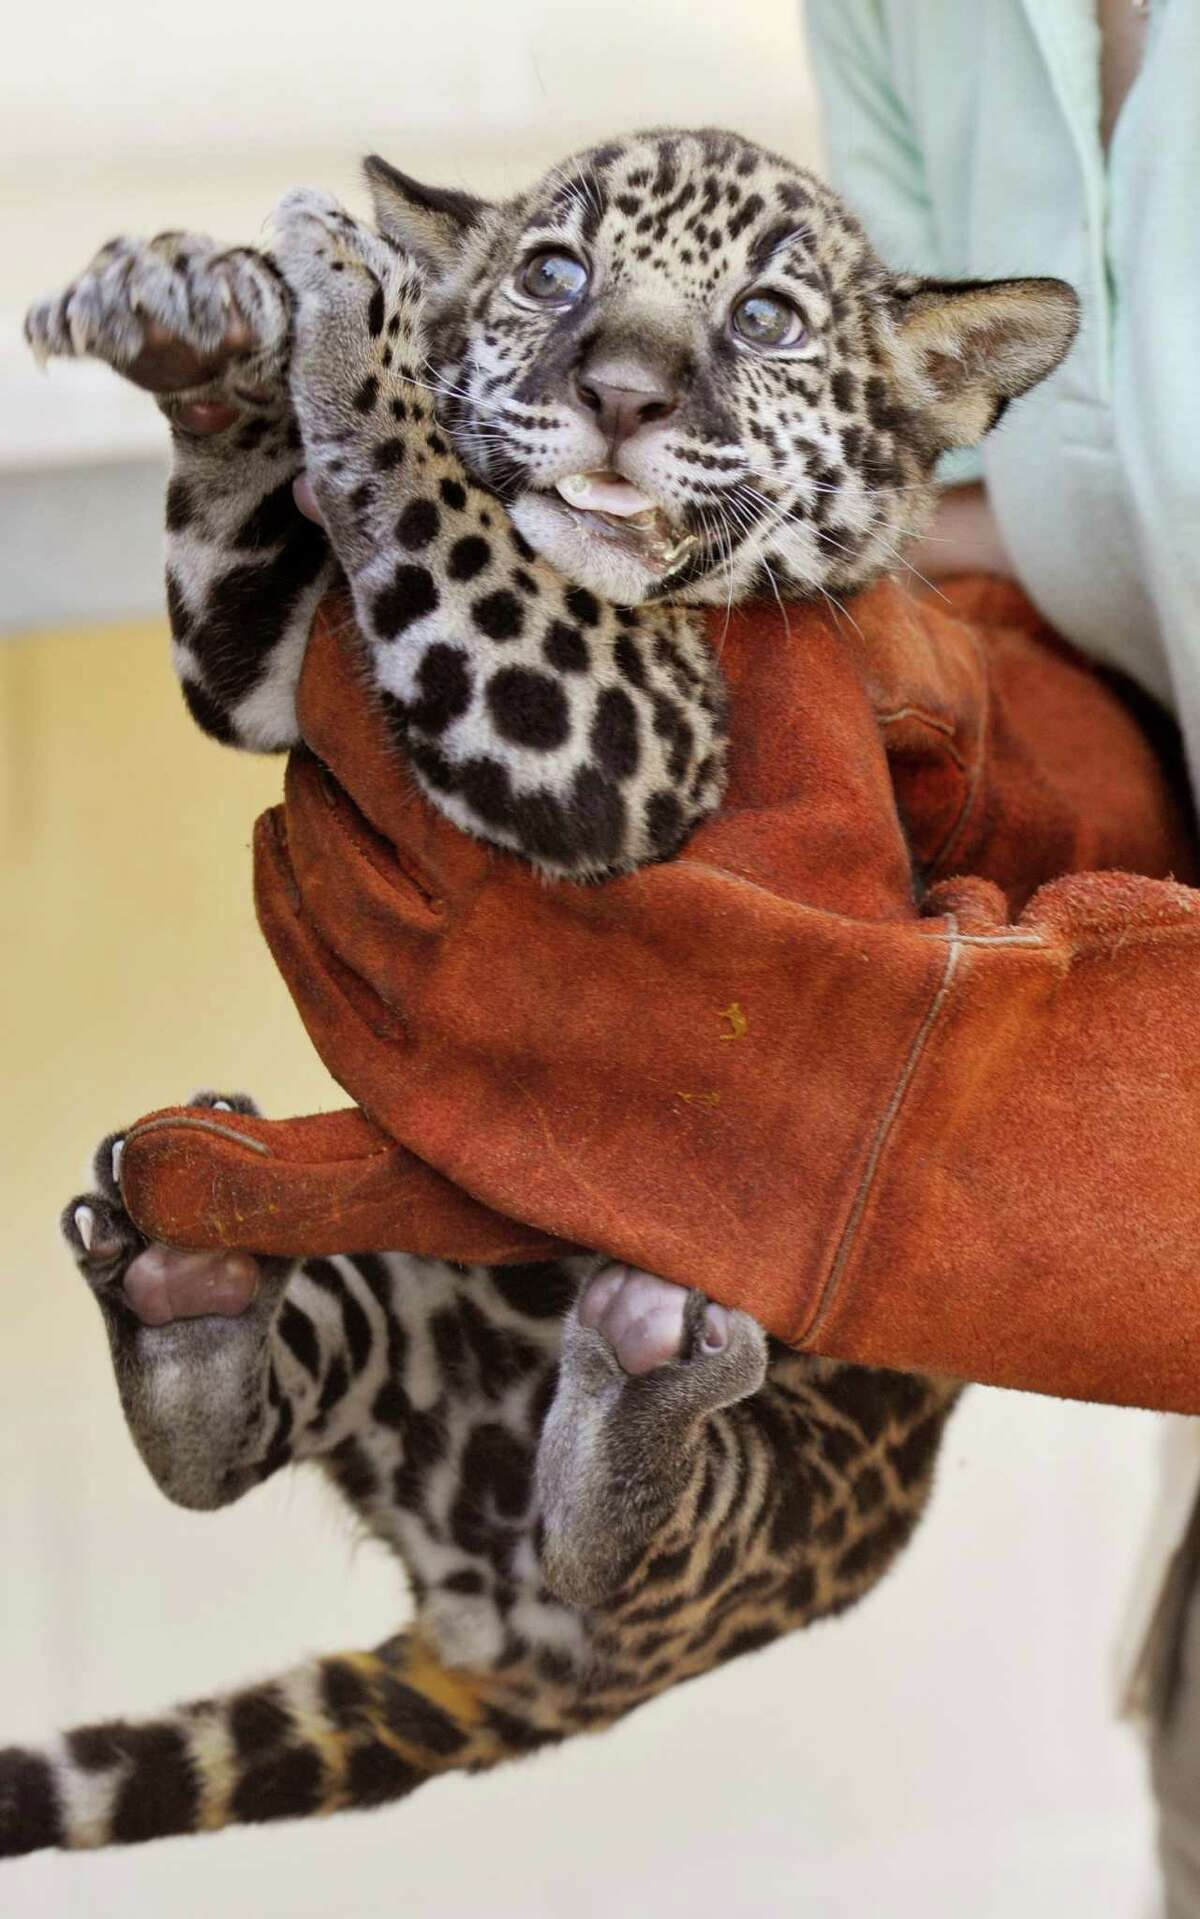 A baby jaguar, born on July 18, 2013 gets a check-up, Wednesday, Sept. 4, 2013 at the Jacksonville Zoo and Gardens in Jacksonville, Fla. The cub will be named at a rally for the Jacksonville Jaguars of the NFL later this week.